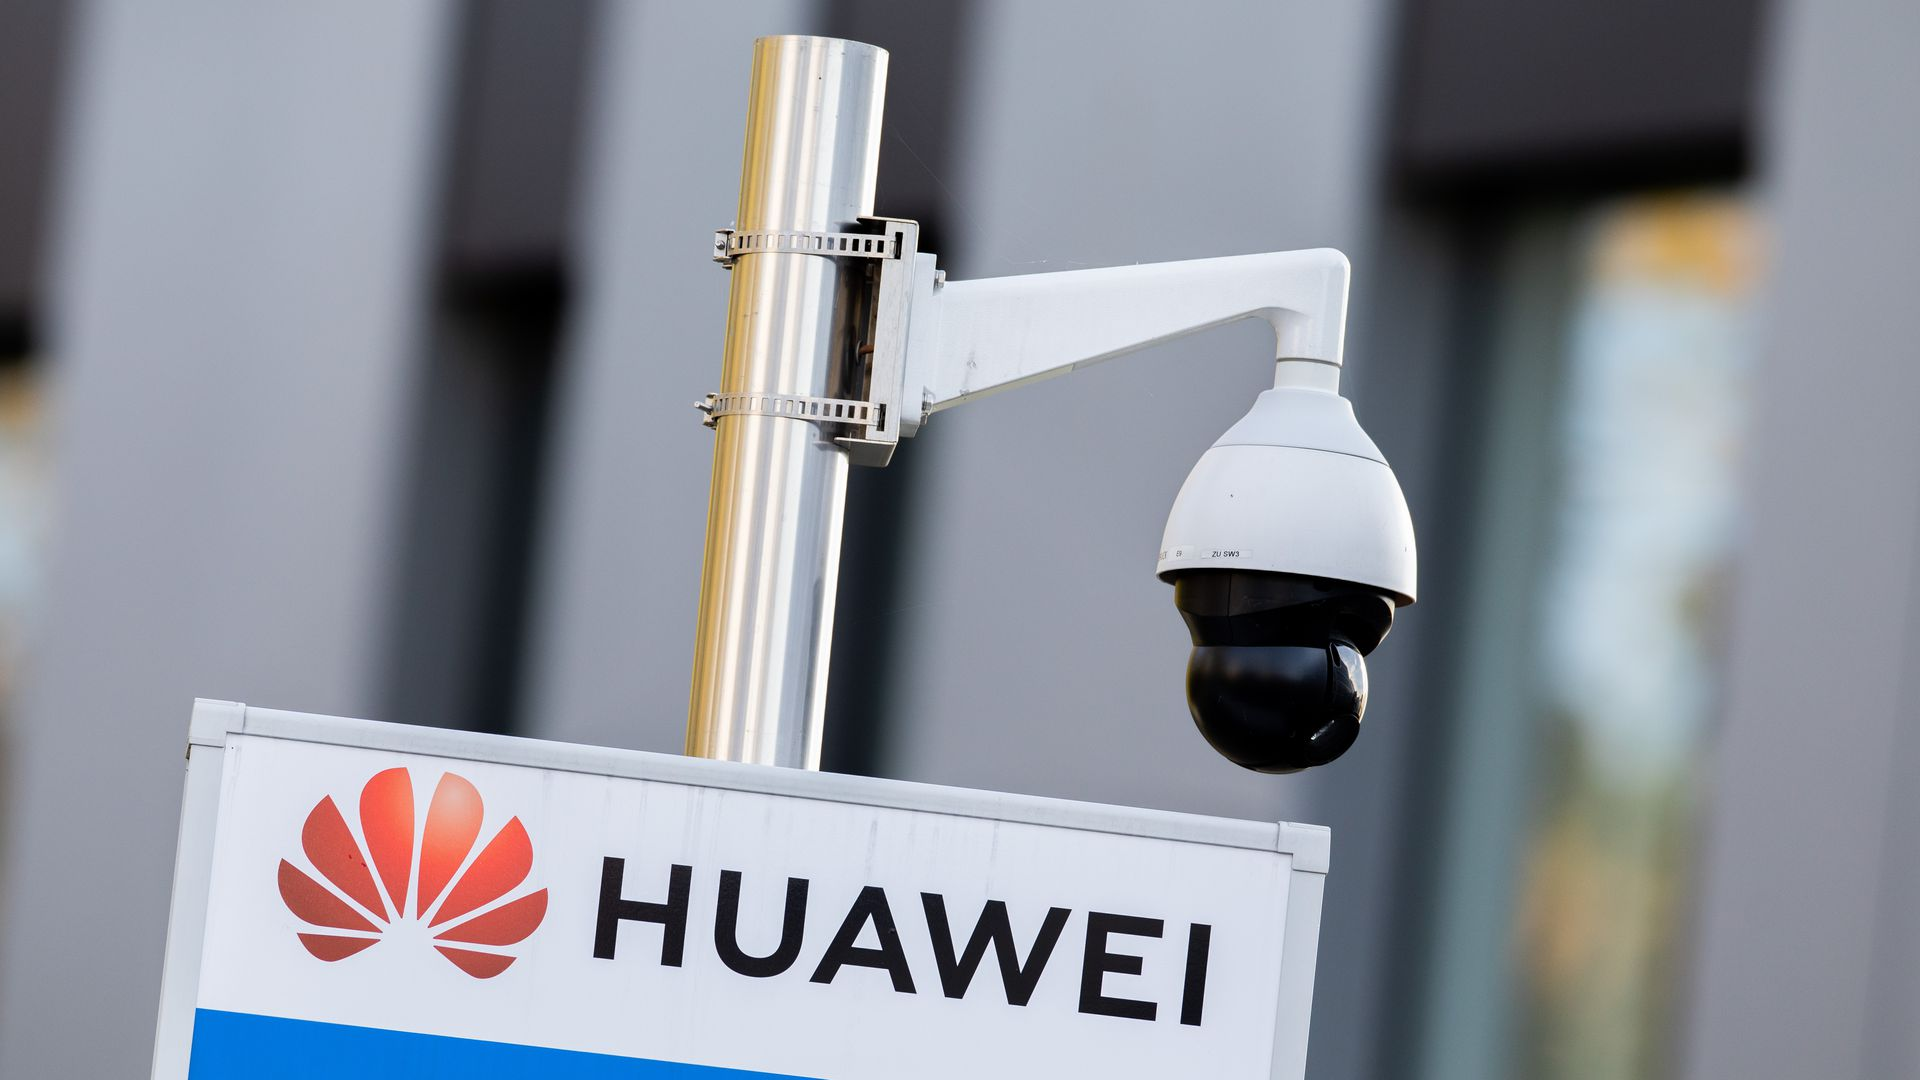 Photo of a Huawei headquarters sign